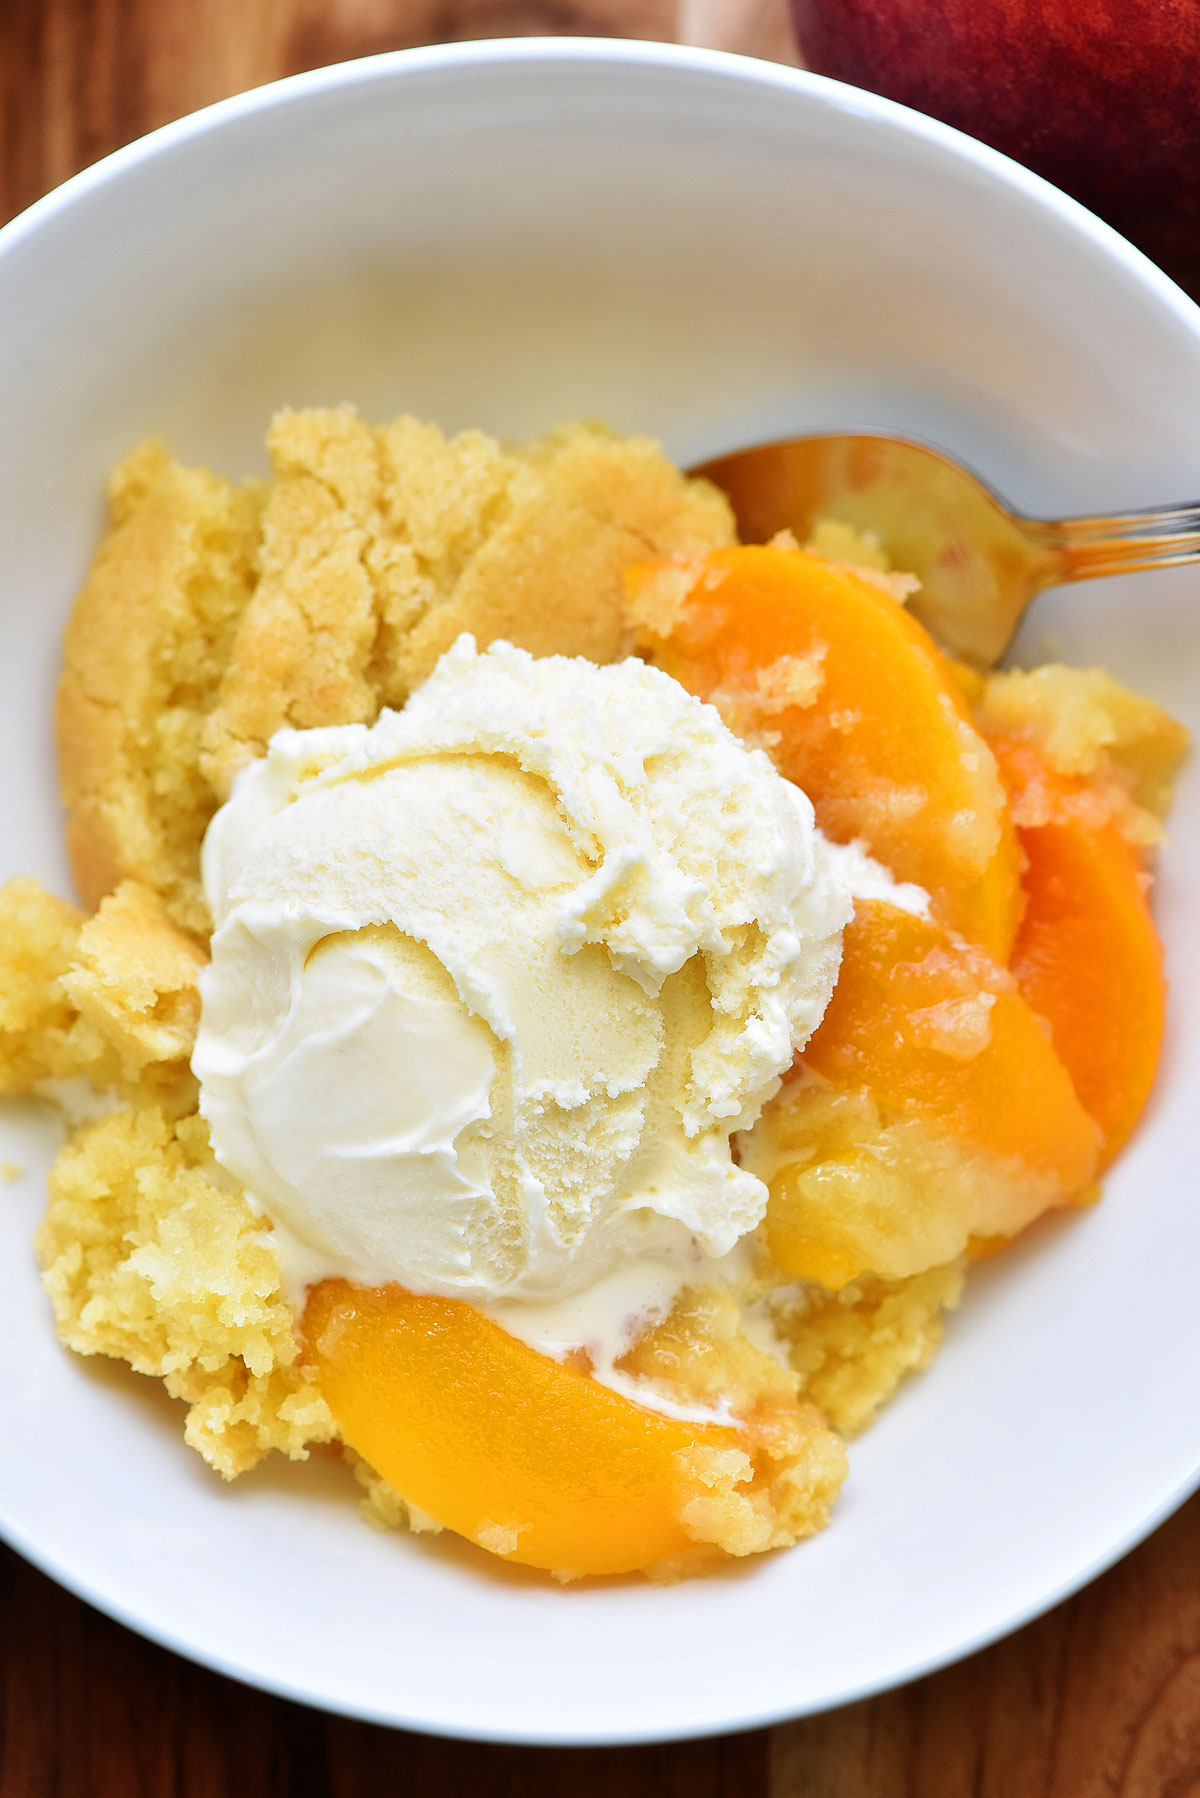 The Best Peach Cobbler is a delicious cake-like dessert made with sliced peaches and served warm with vanilla ice-cream. Life-in-the-Lofthouse.com